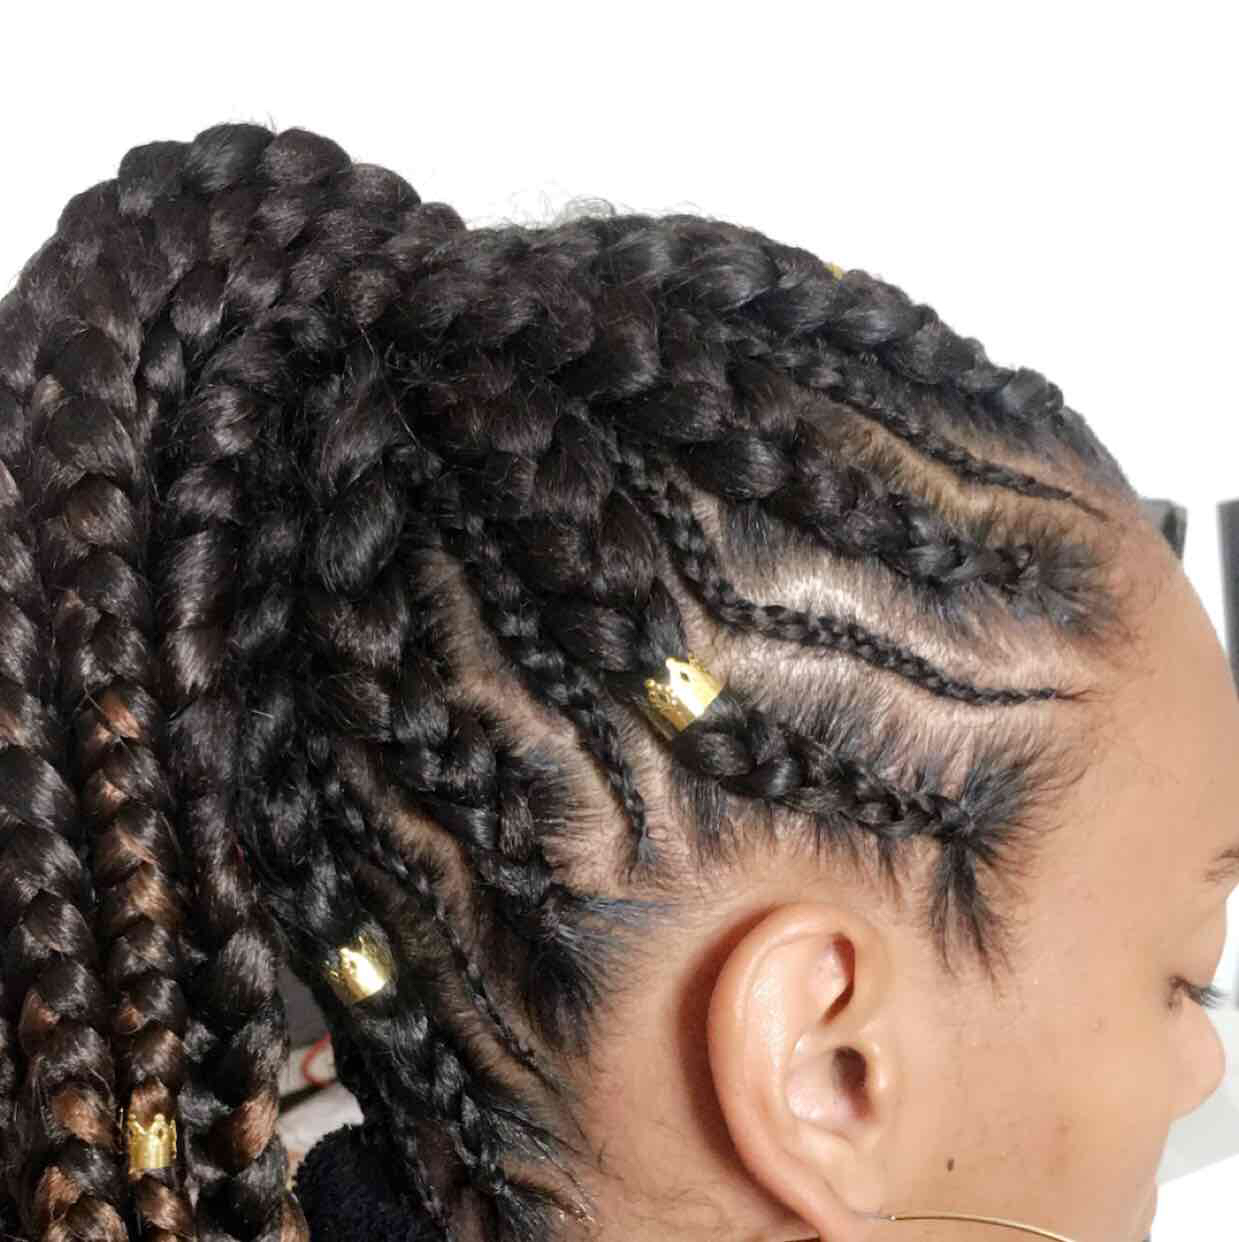 salon de coiffure afro tresse tresses box braids crochet braids vanilles tissages paris 75 77 78 91 92 93 94 95 VUKSBKXX